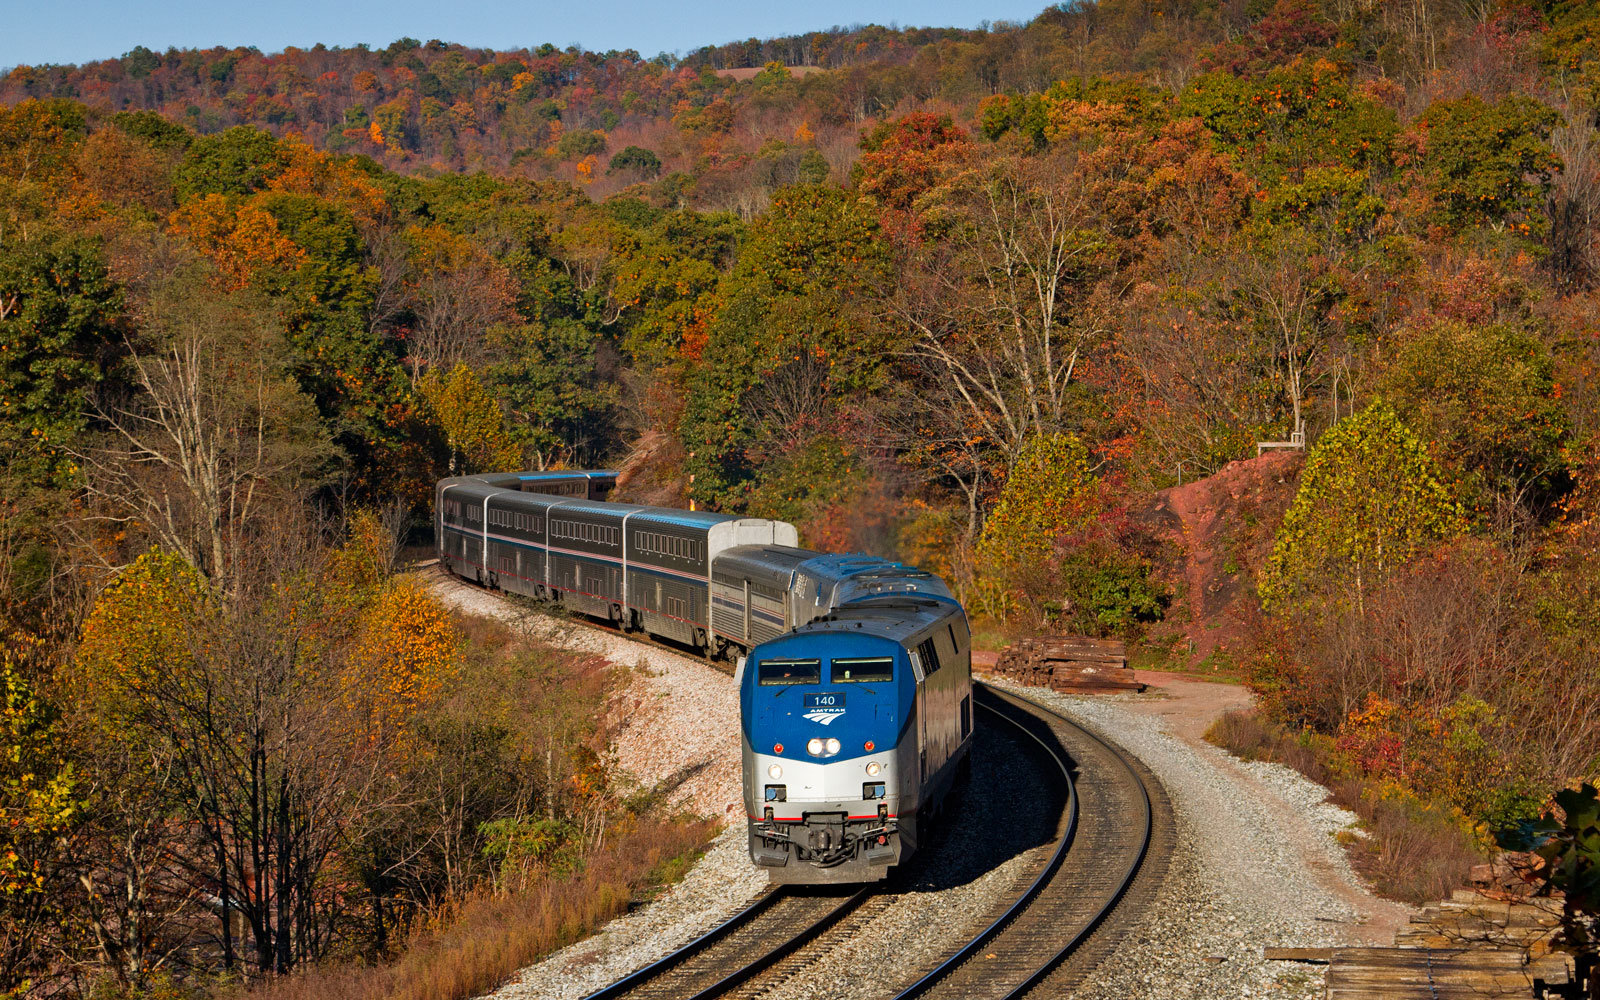 Amtrak Is Having a 2-for-1 Sale on Private Roomettes So You Can Book Your Dream Train Trip With a Friend (Video)